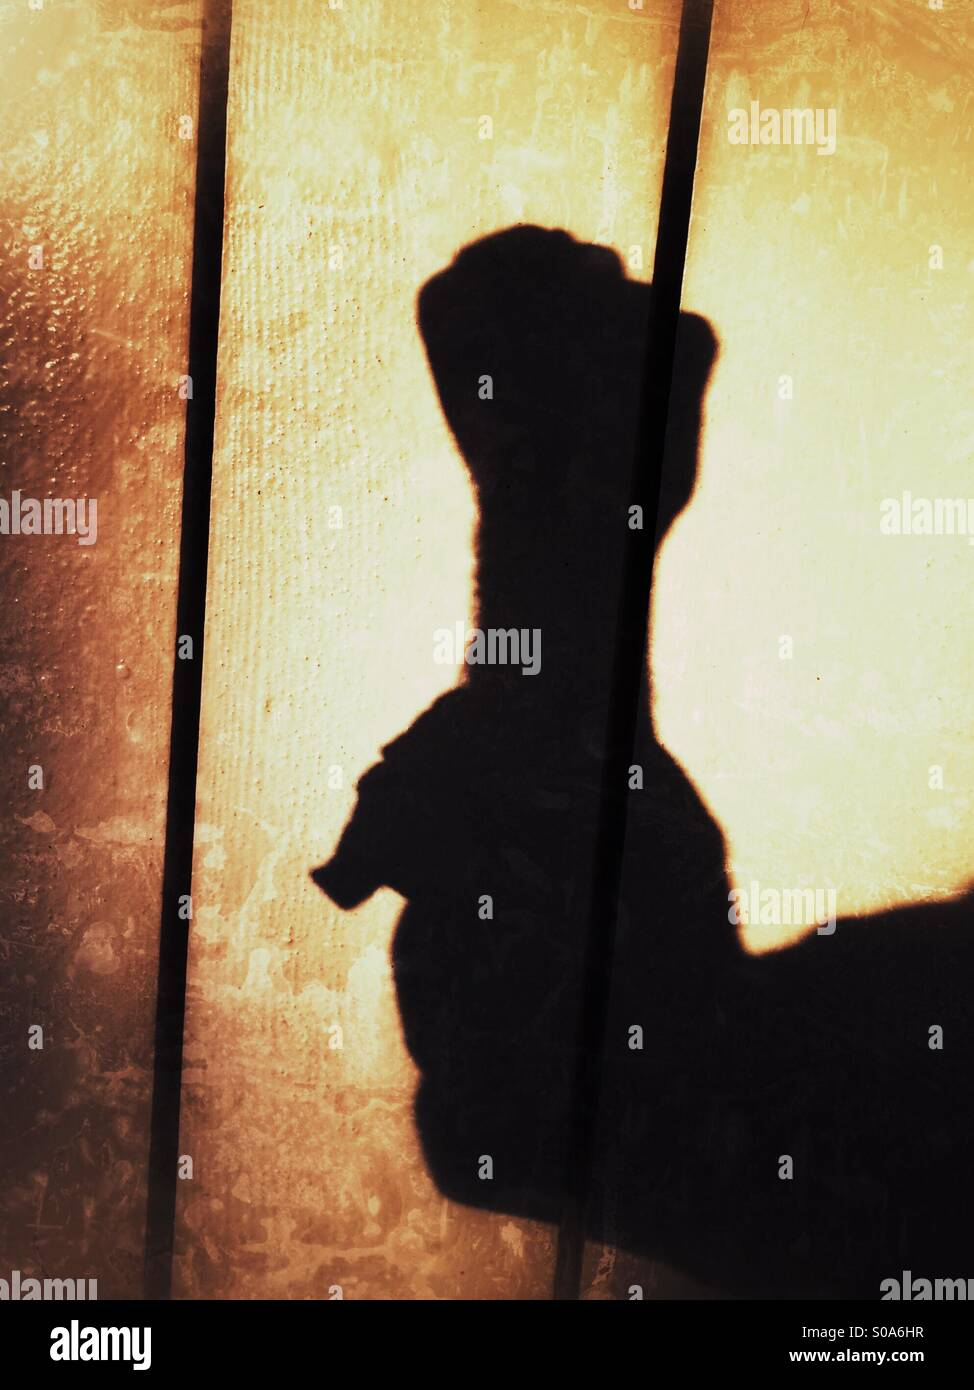 A man casting a shadow on a wall, counting on his hand. Number zero. Stock Photo